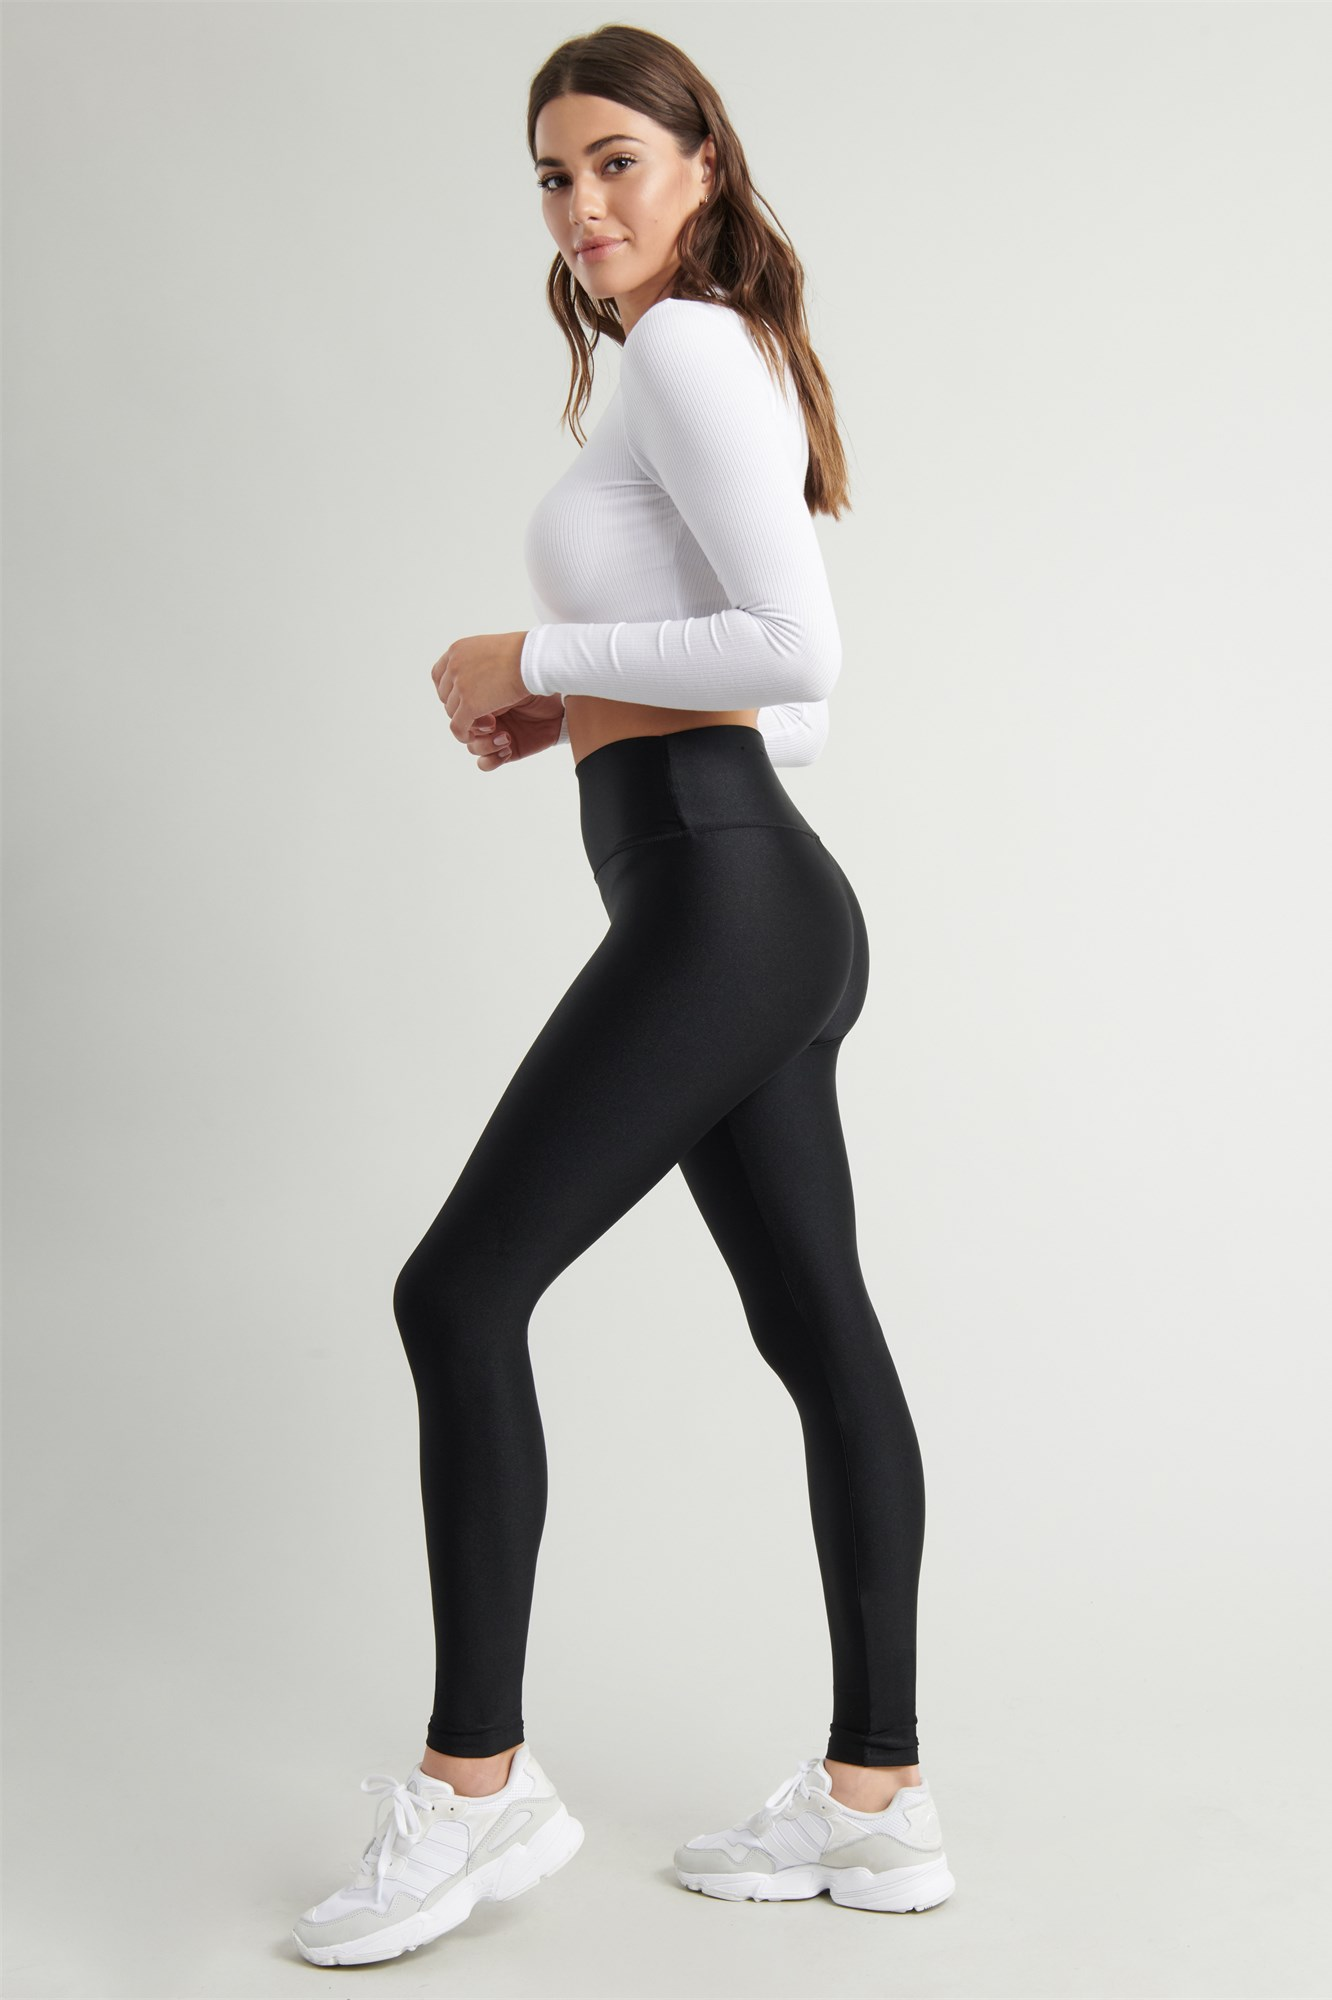 Image 1 of Luxe Shiny High Rise Legging